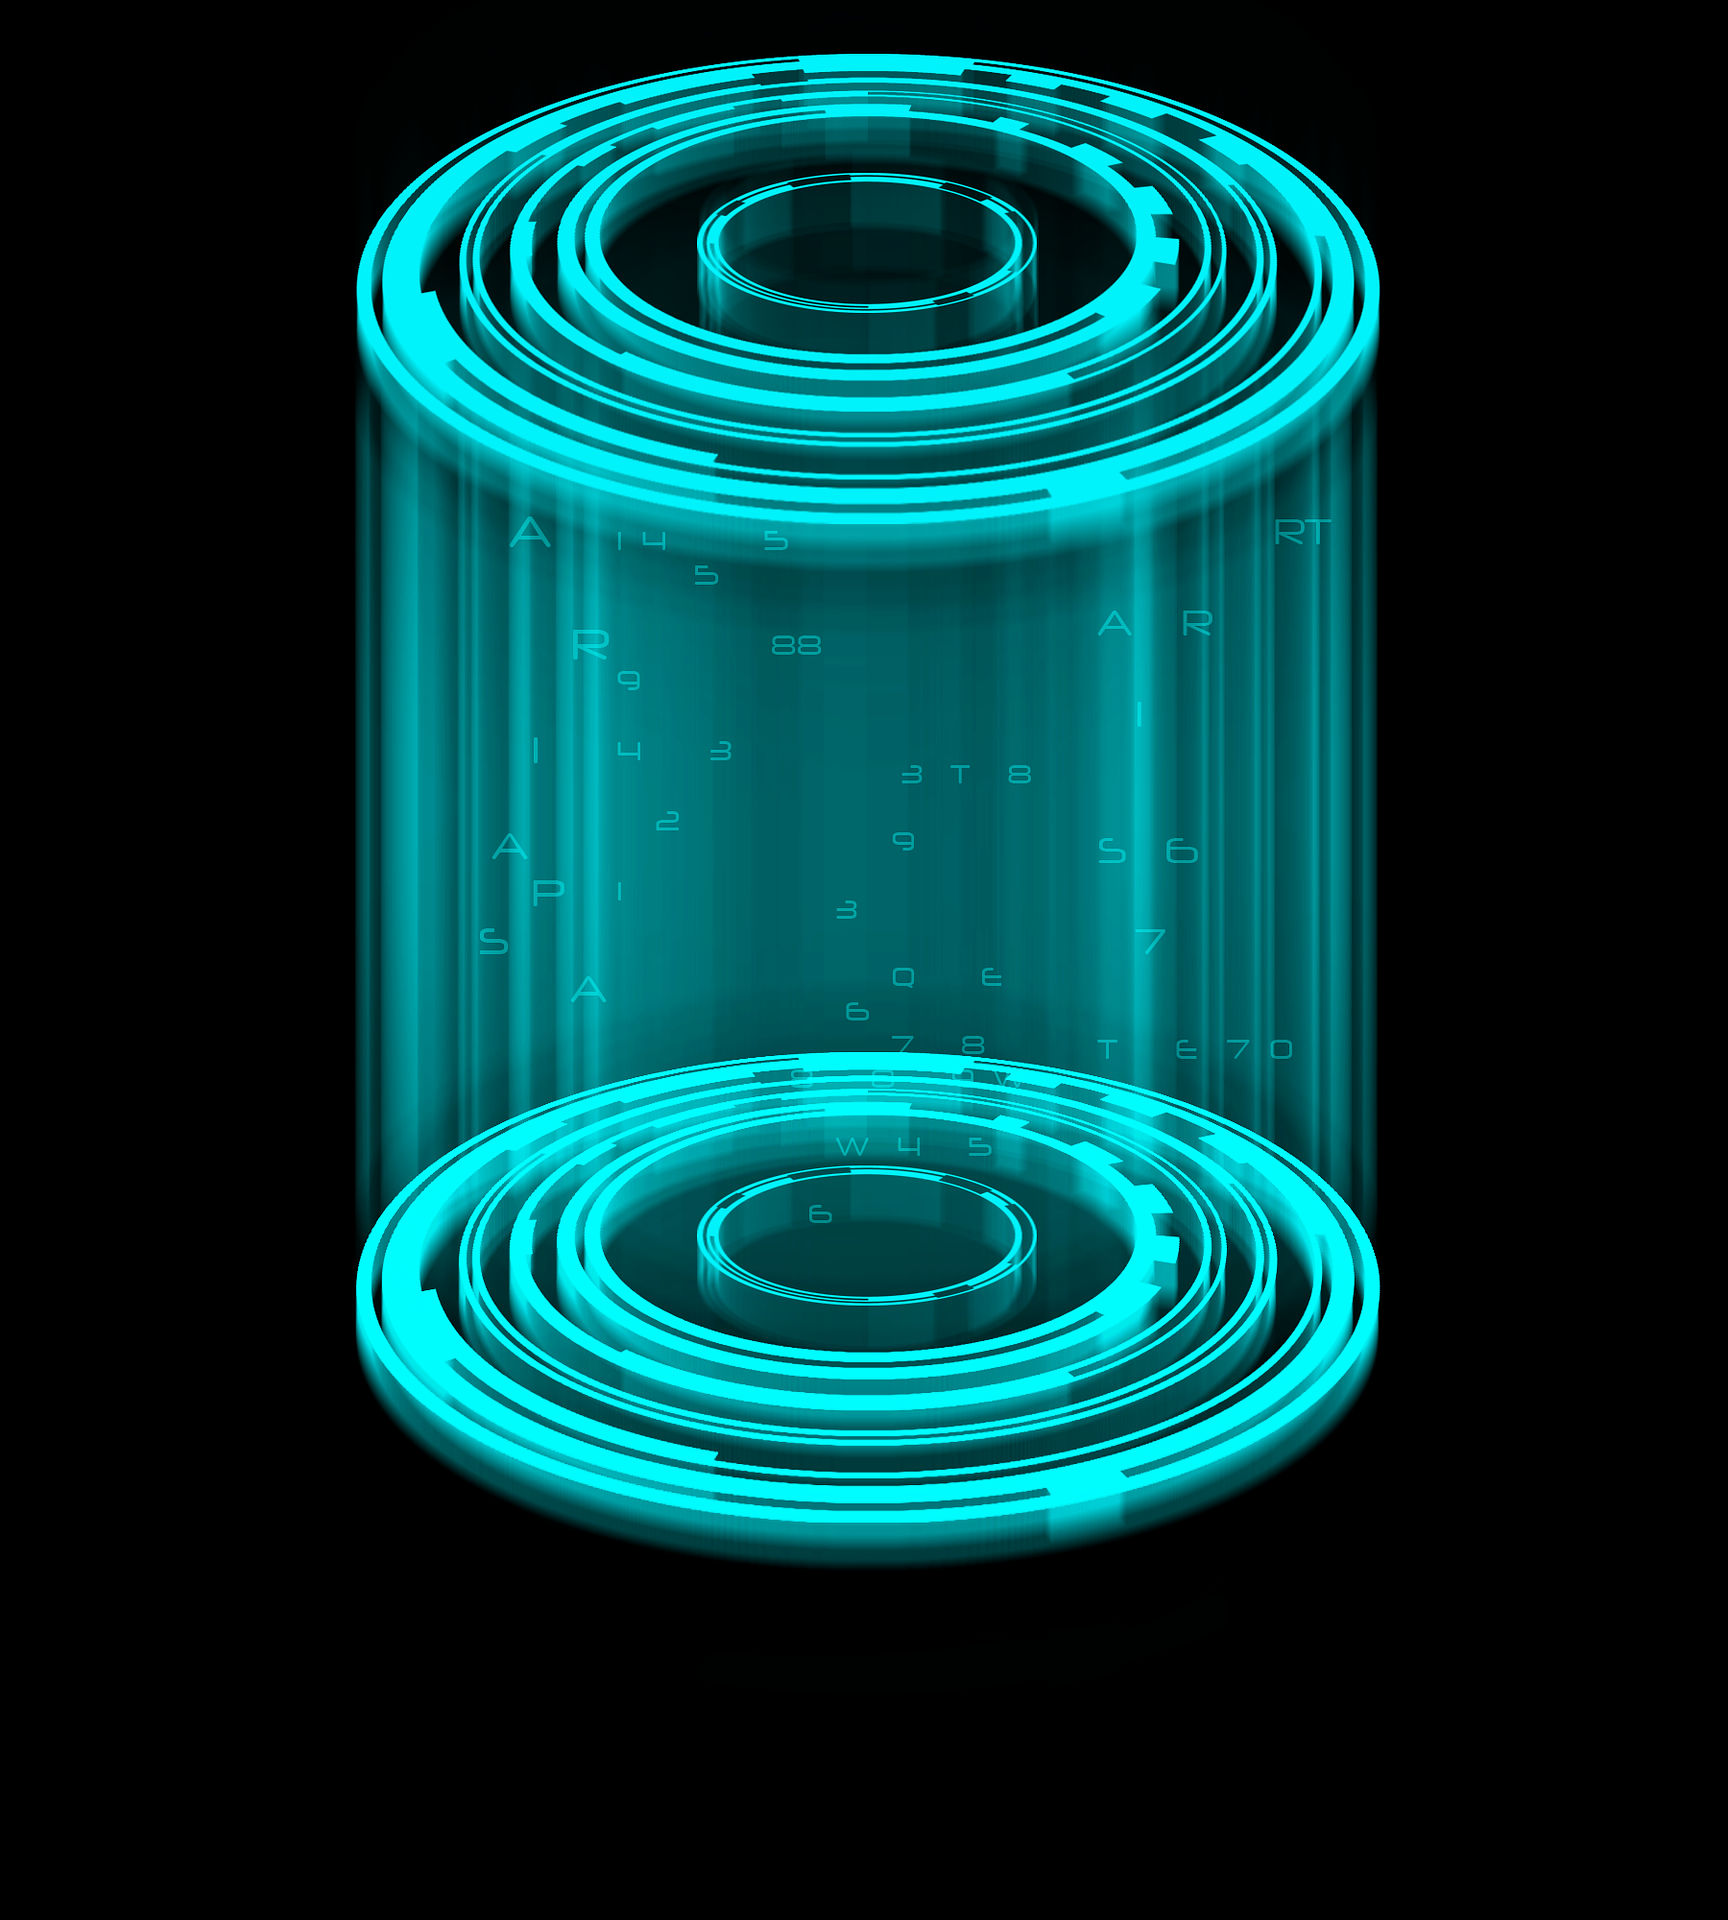 cage-holography-1044215_1920.png